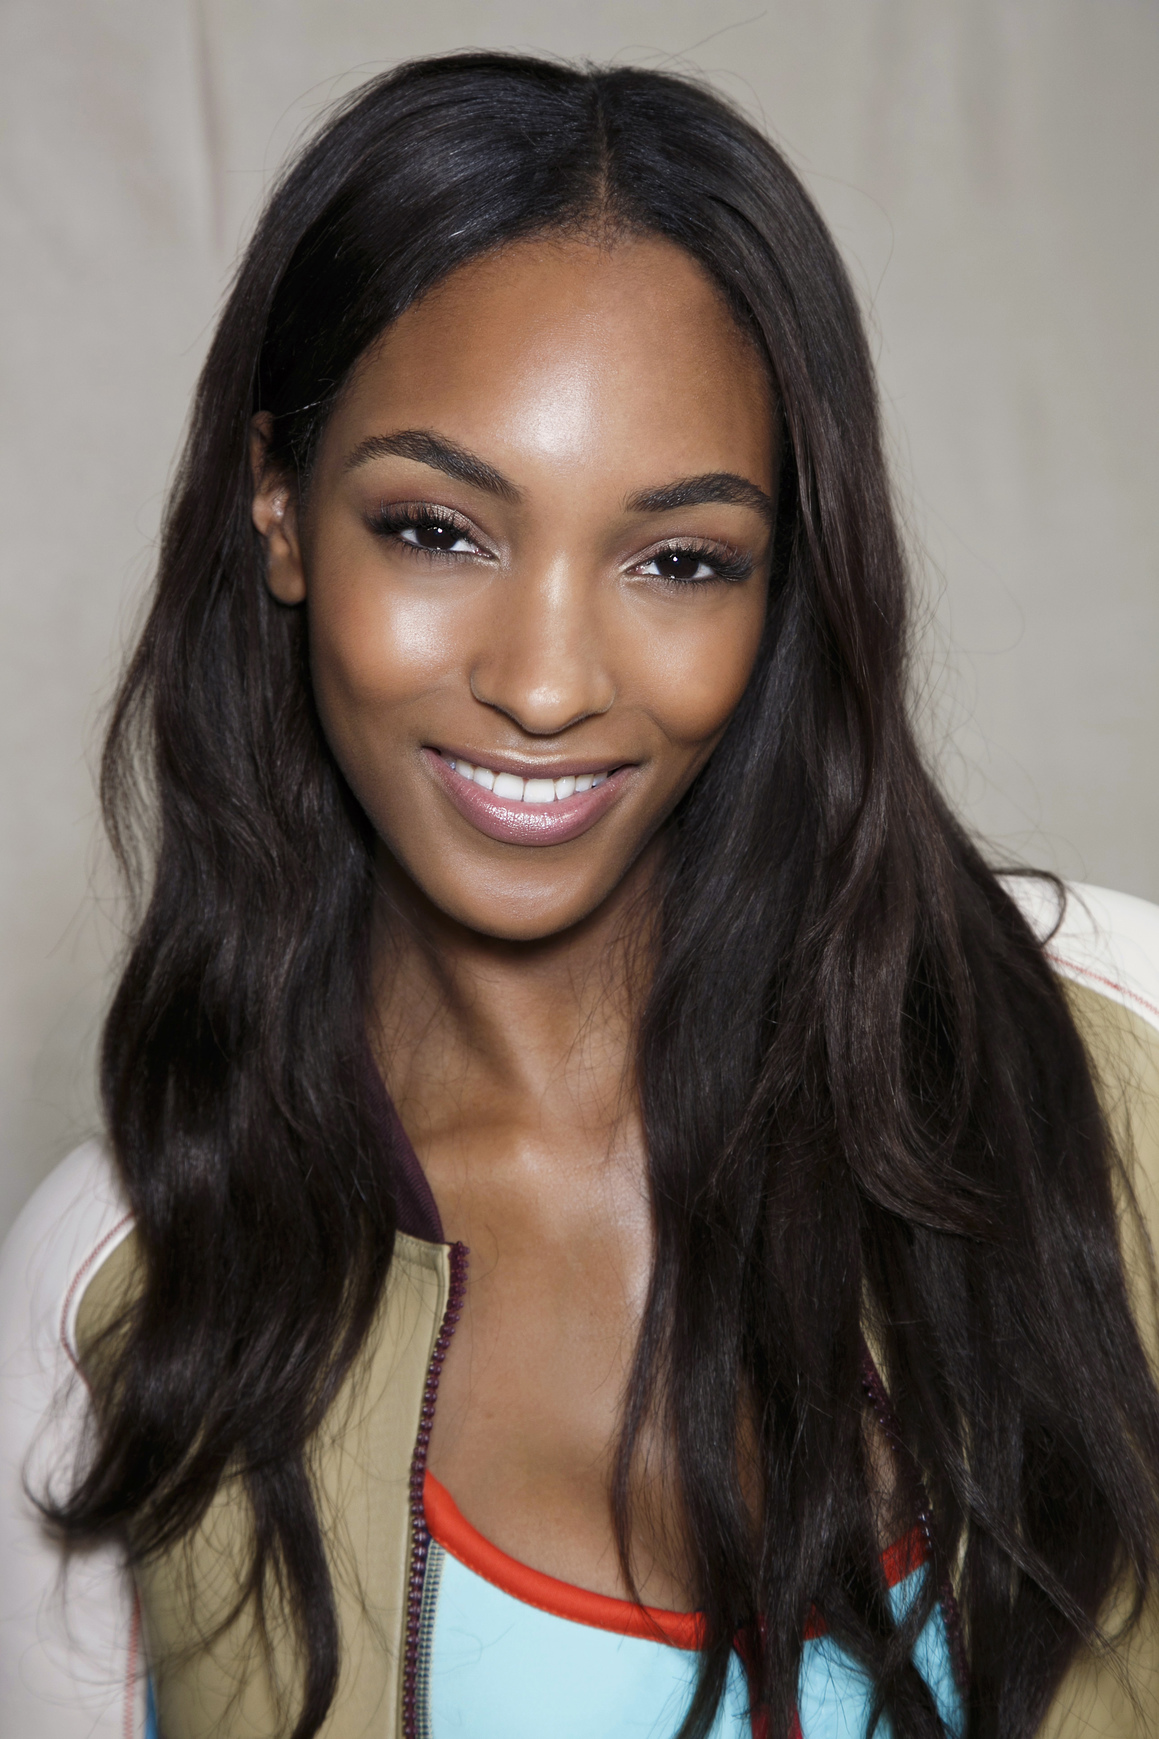 makeup and hair tricks for long faces | stylecaster